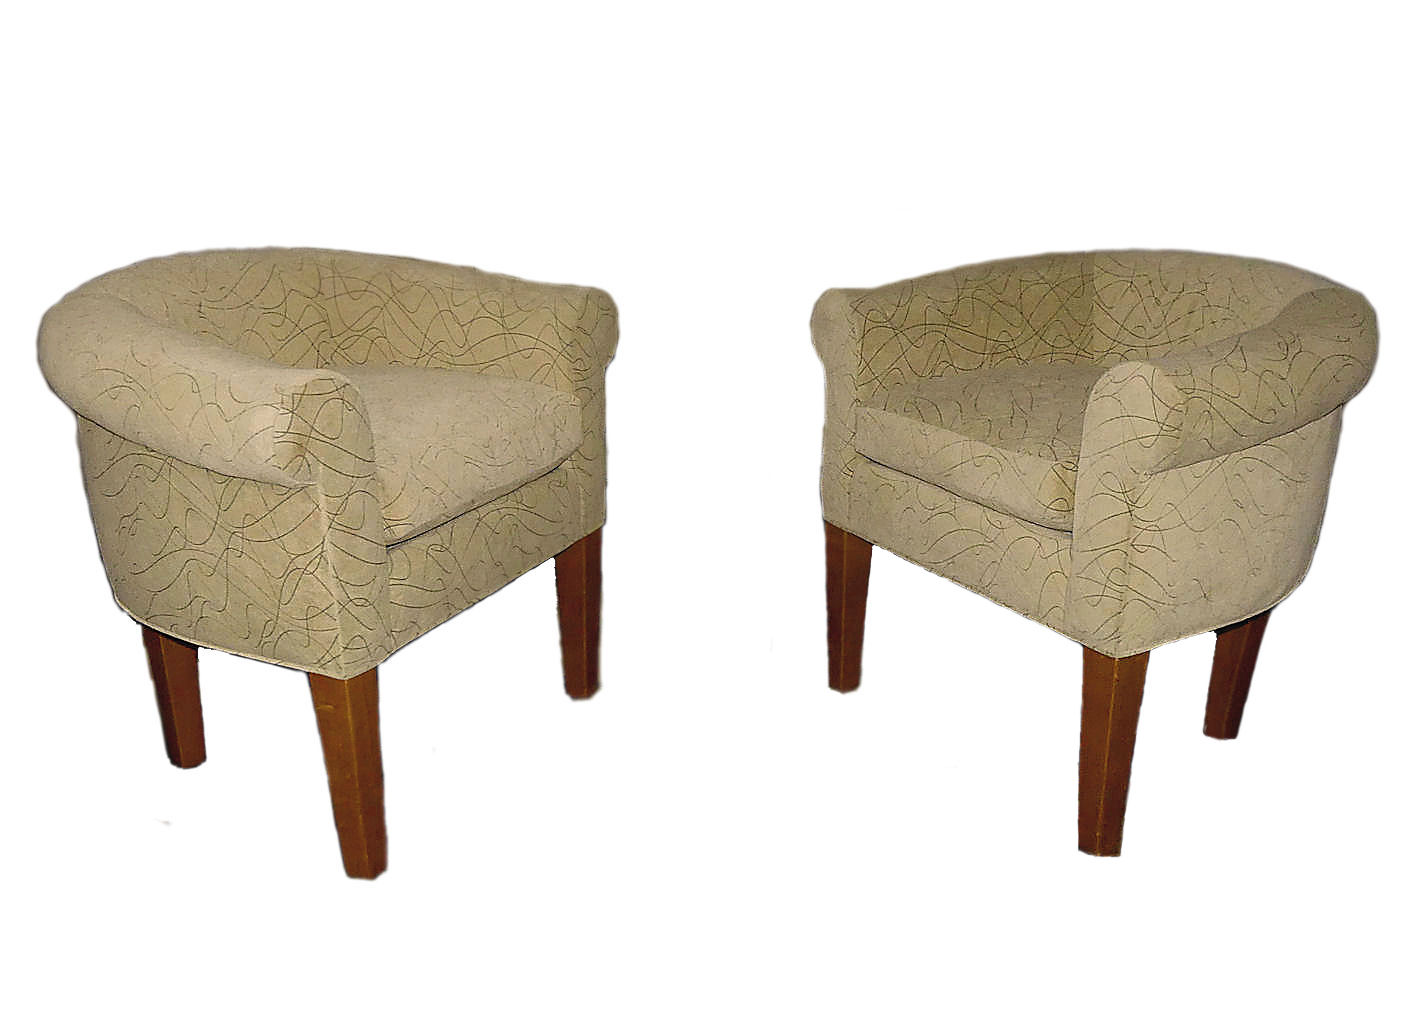 SOLD Ralph Lauren Contemporary Tub Chairs